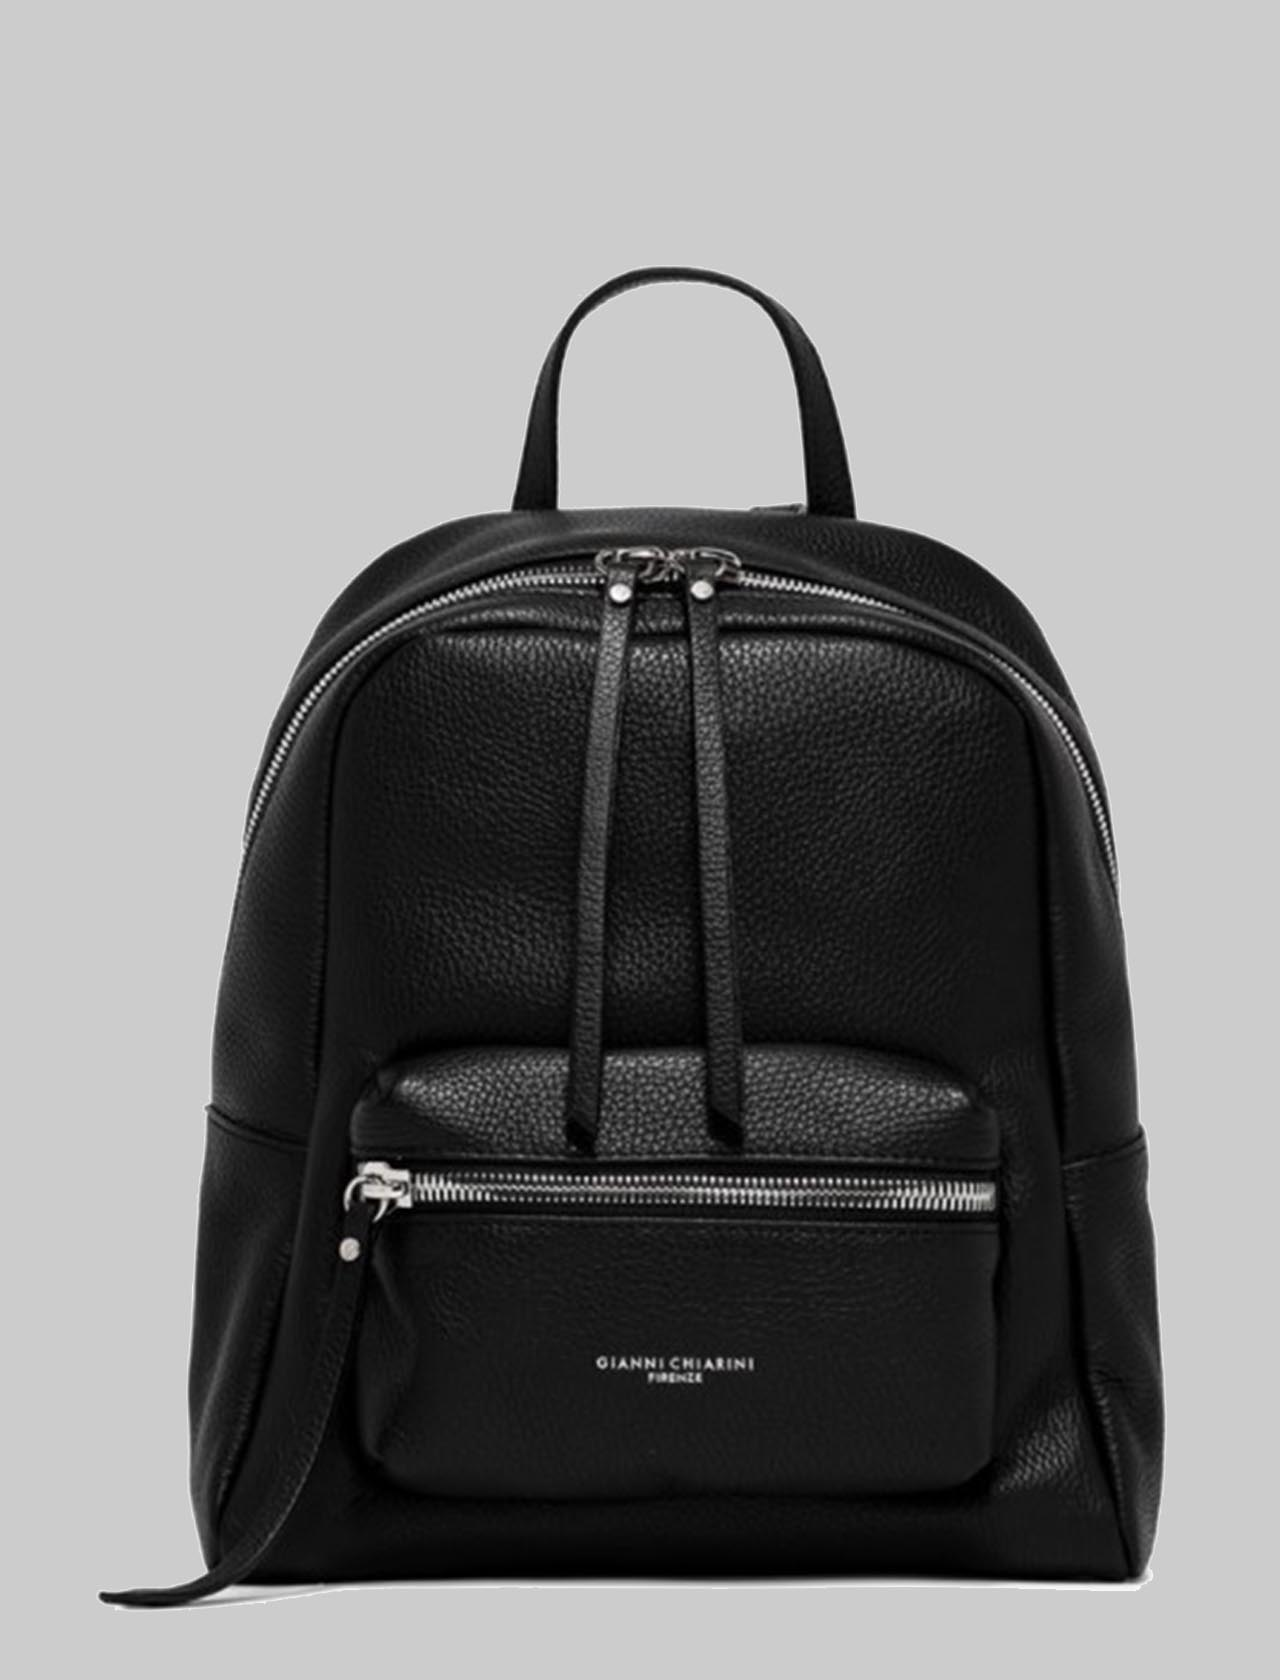 Luna Woman Backpack In Black Hammered Leather With Front Pocket And Adjustable Handle And Straps Gianni Chiarini | Bags and backpacks | ZN8605001